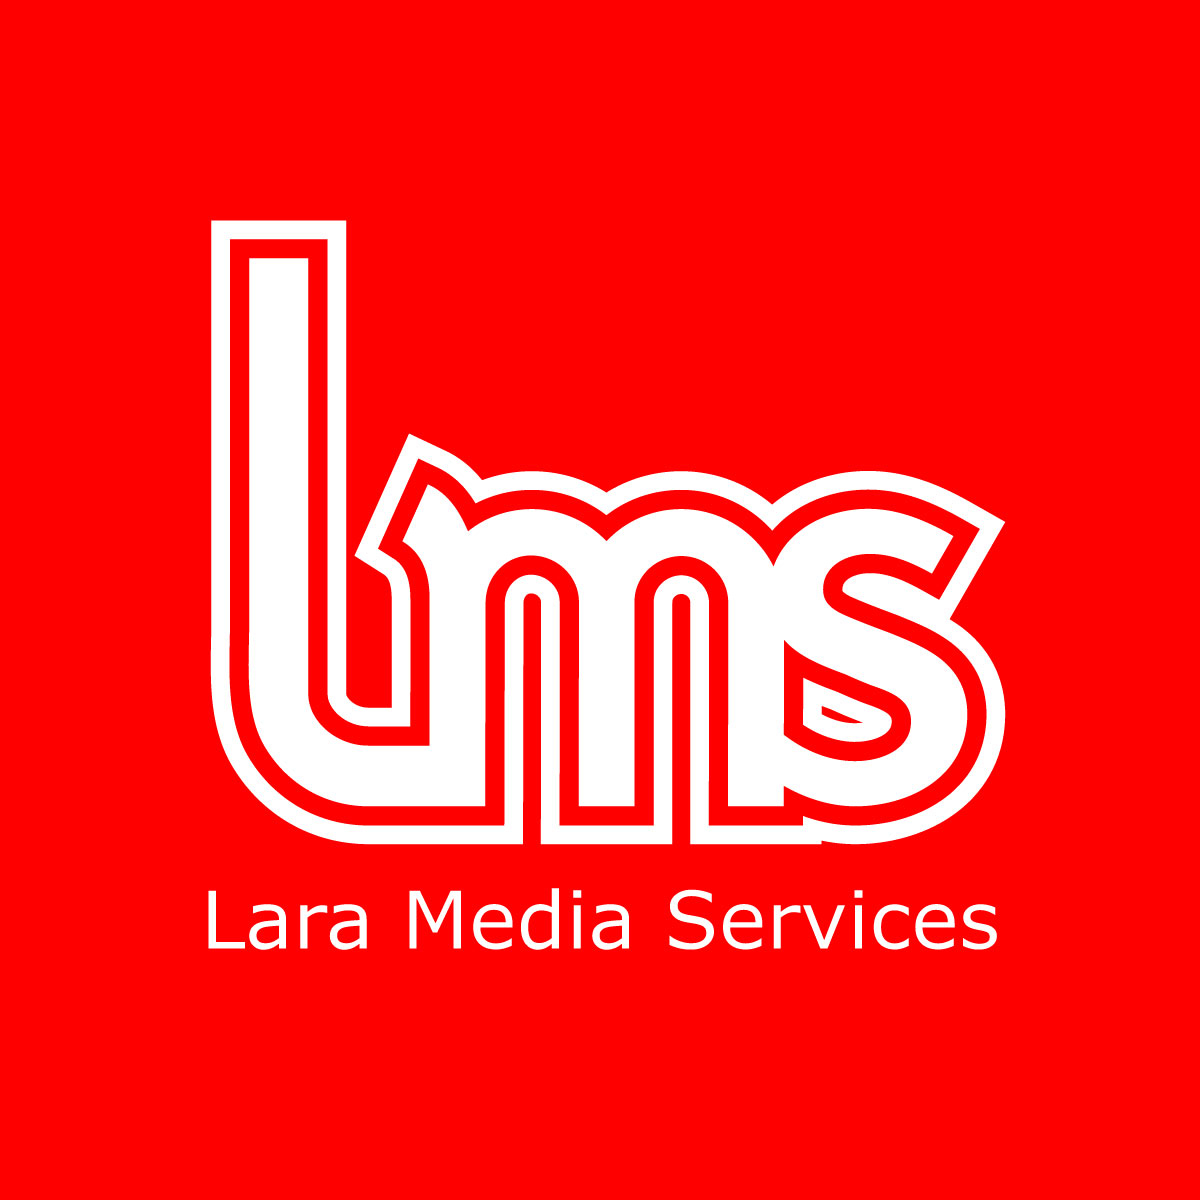 Lara Media Services LLC